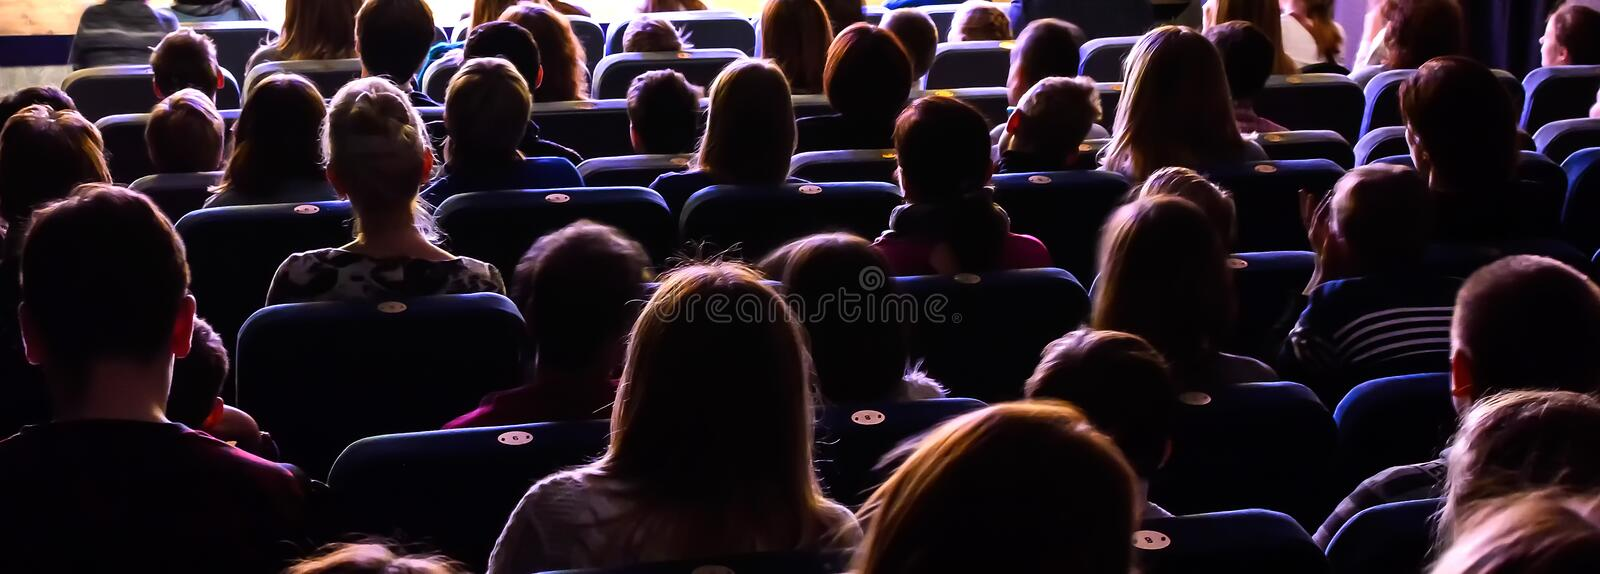 People in the auditorium watching the performance royalty free stock photos